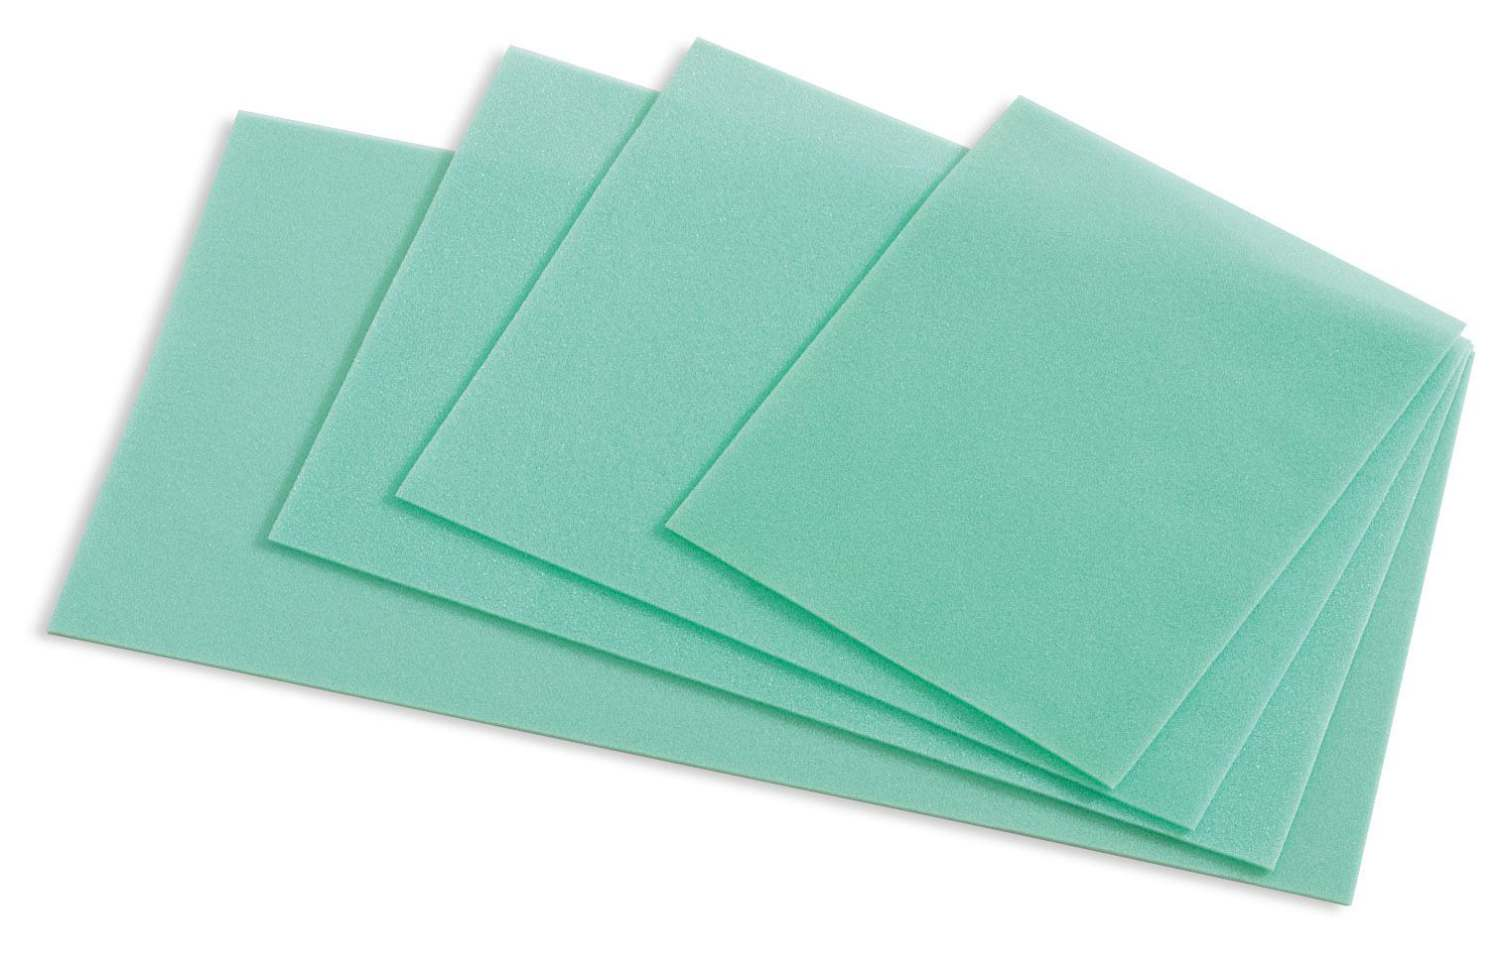 Kendall Instrument Tray Pad - Extra-Fine, Pre-Cut, Reticucel, Box of 75 - Model 31141016